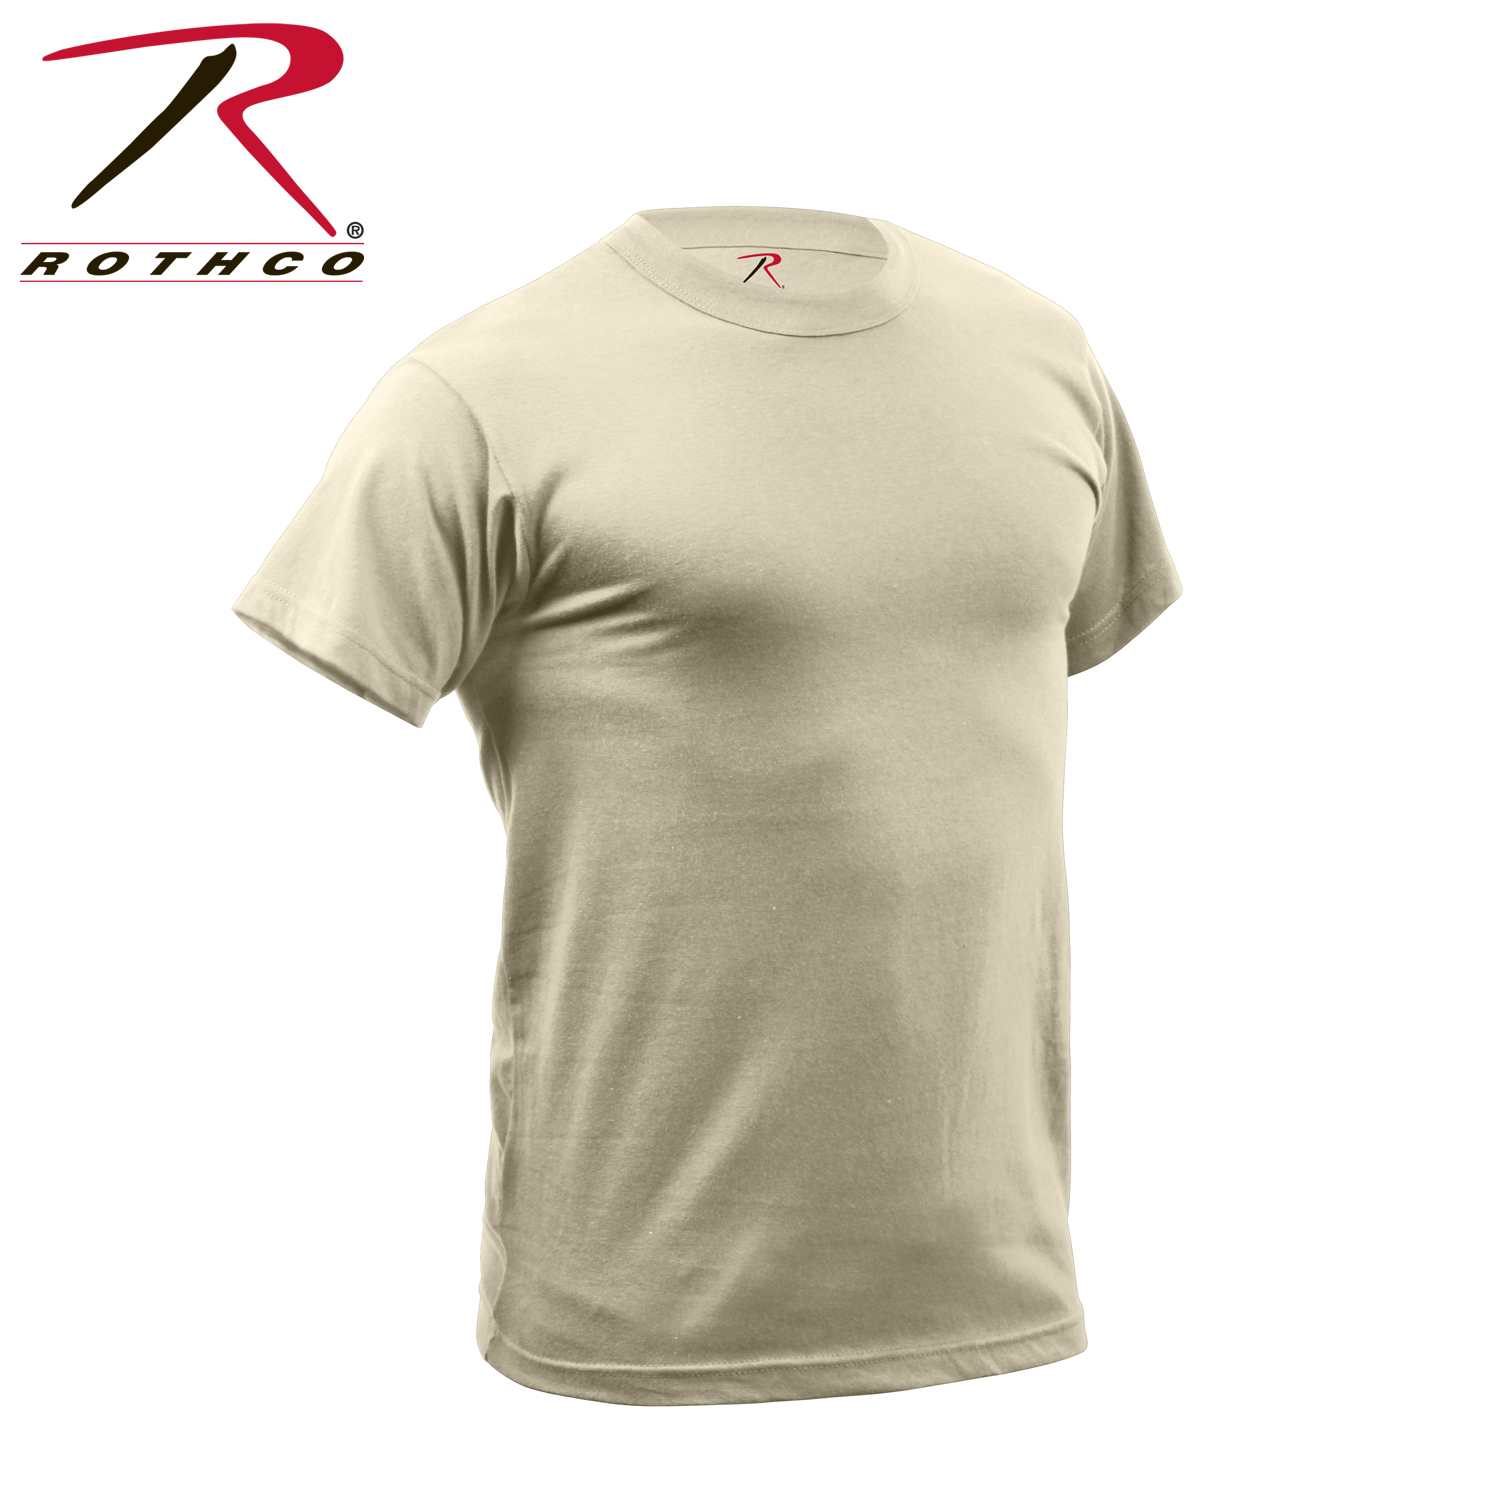 moisture-wicking clothing Stay dry and comfortable throughout your workout with Nike moisture-wicking clothing. Engineered with Dri-FIT technology to wick away moisture and keep you pushing to the end without being weighed down.